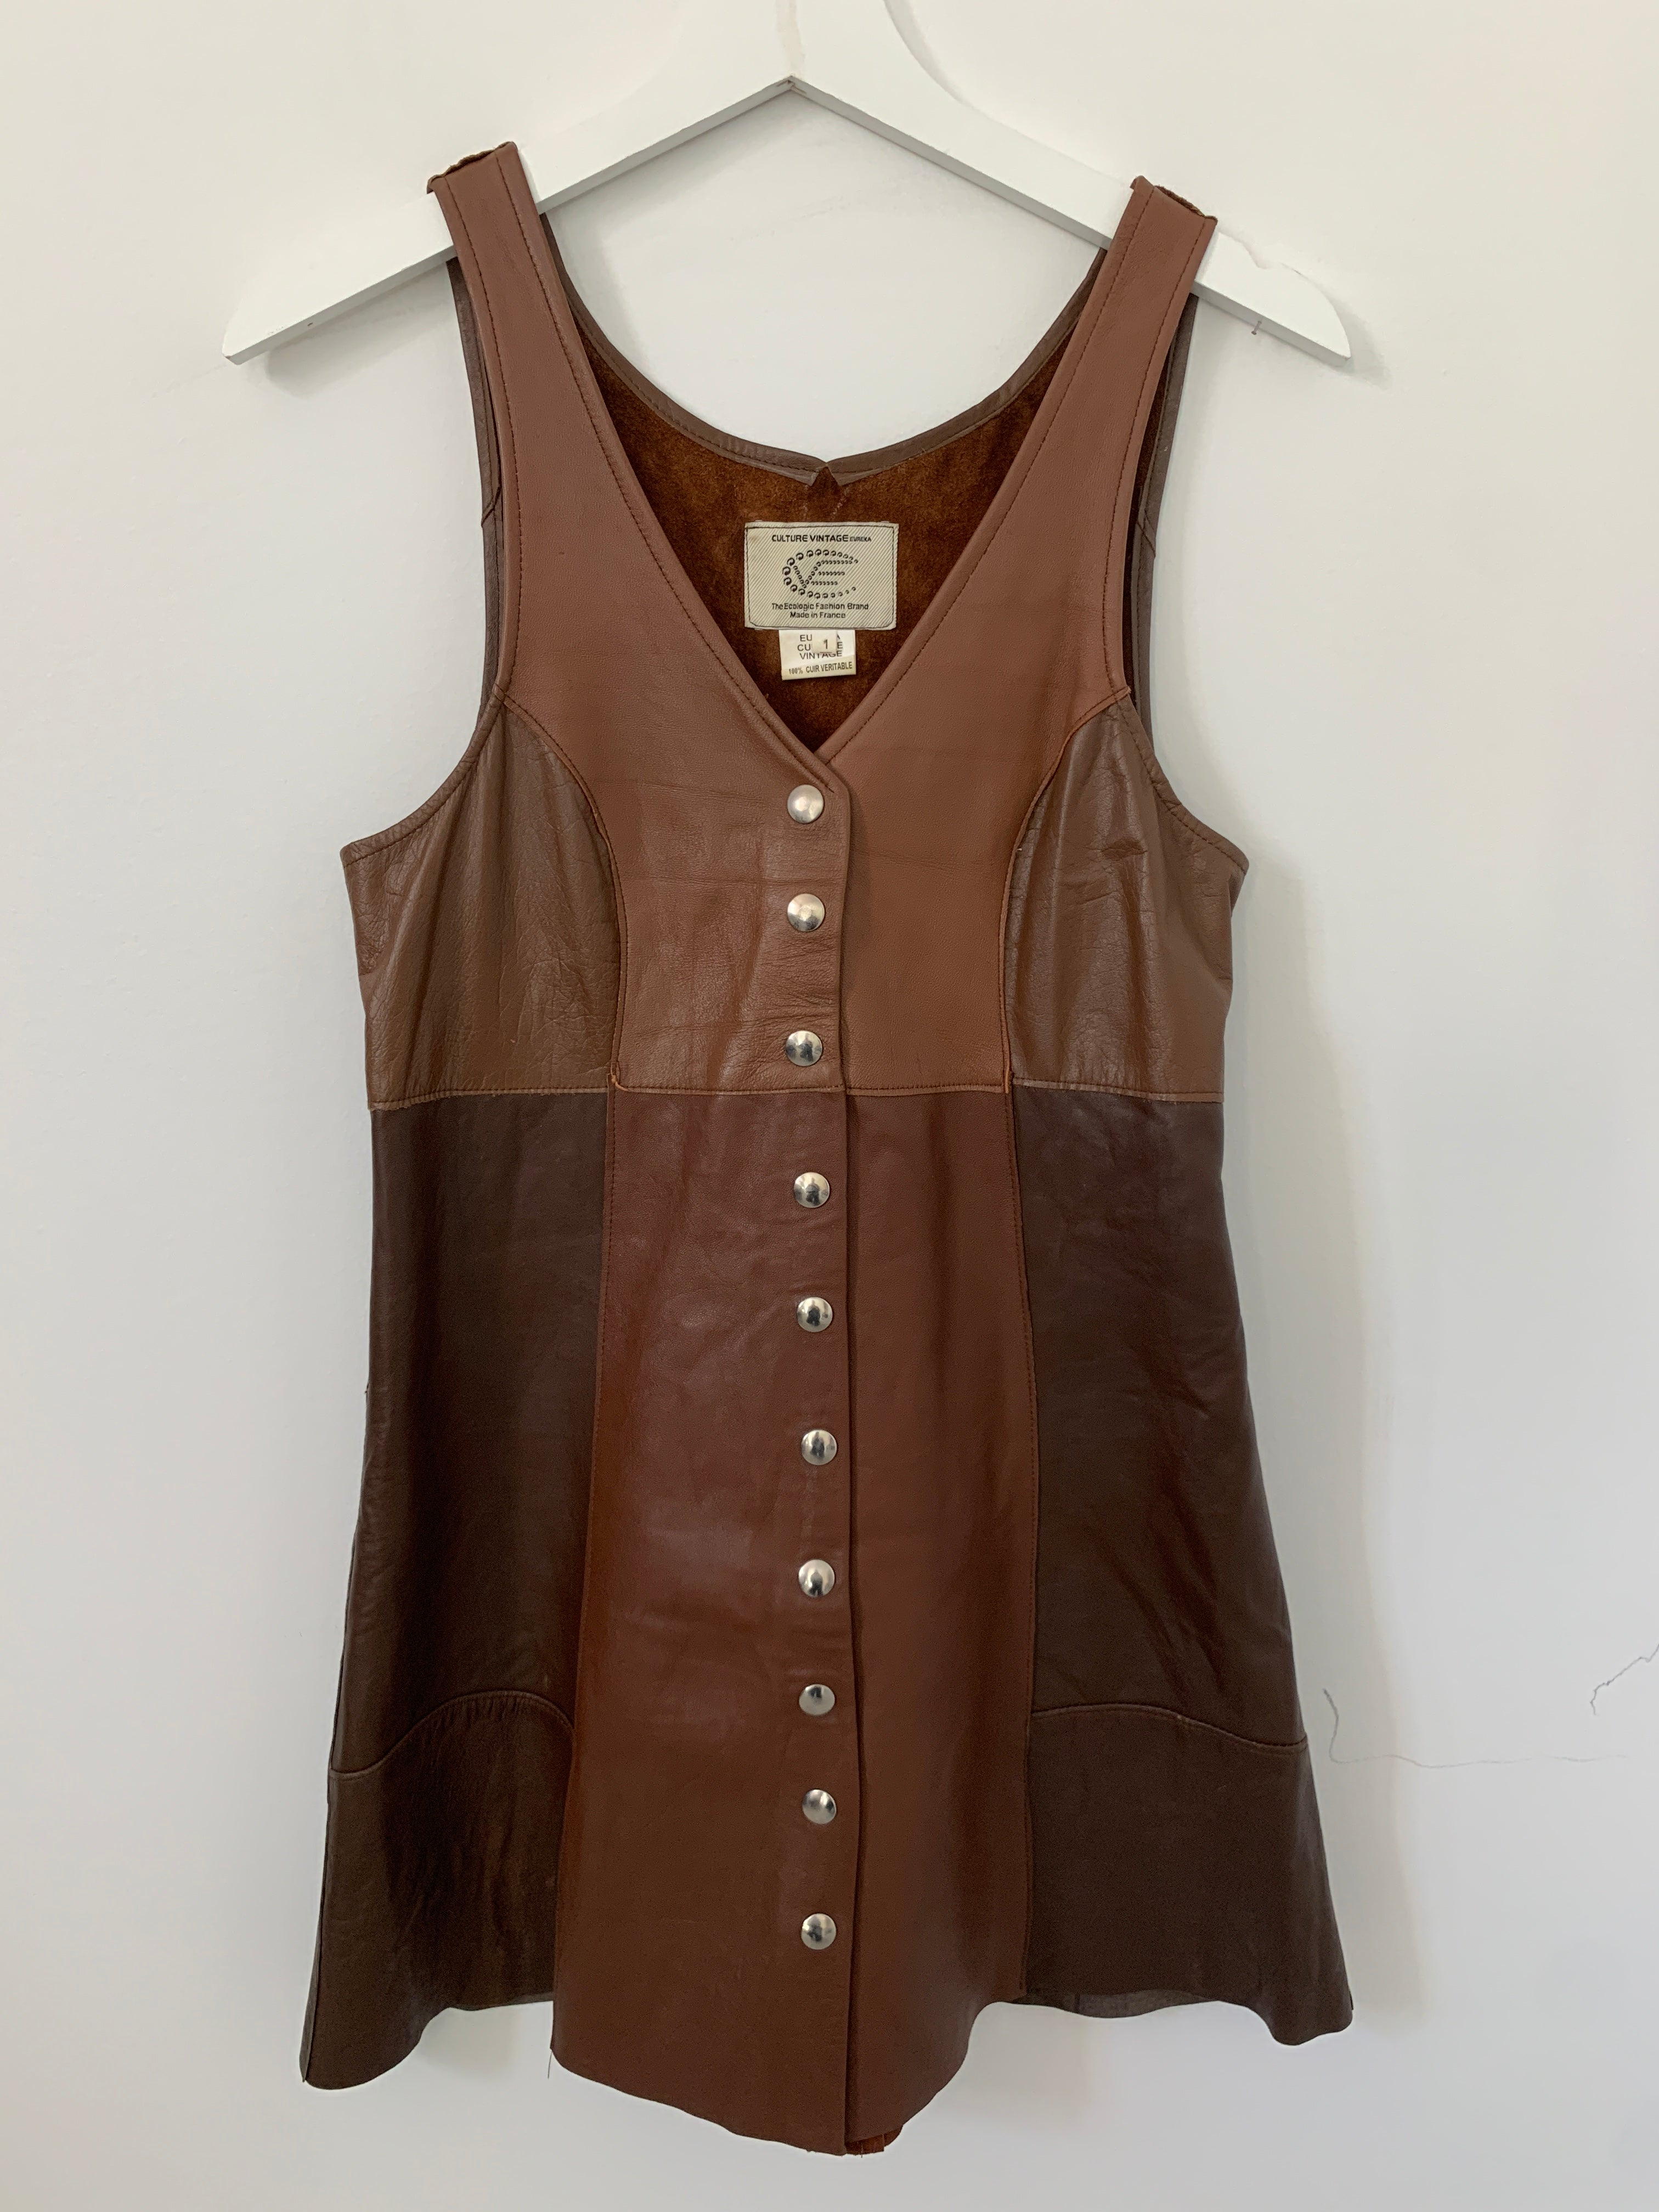 izzi (The Preatures): Vintage leather button up Jackaroo dress